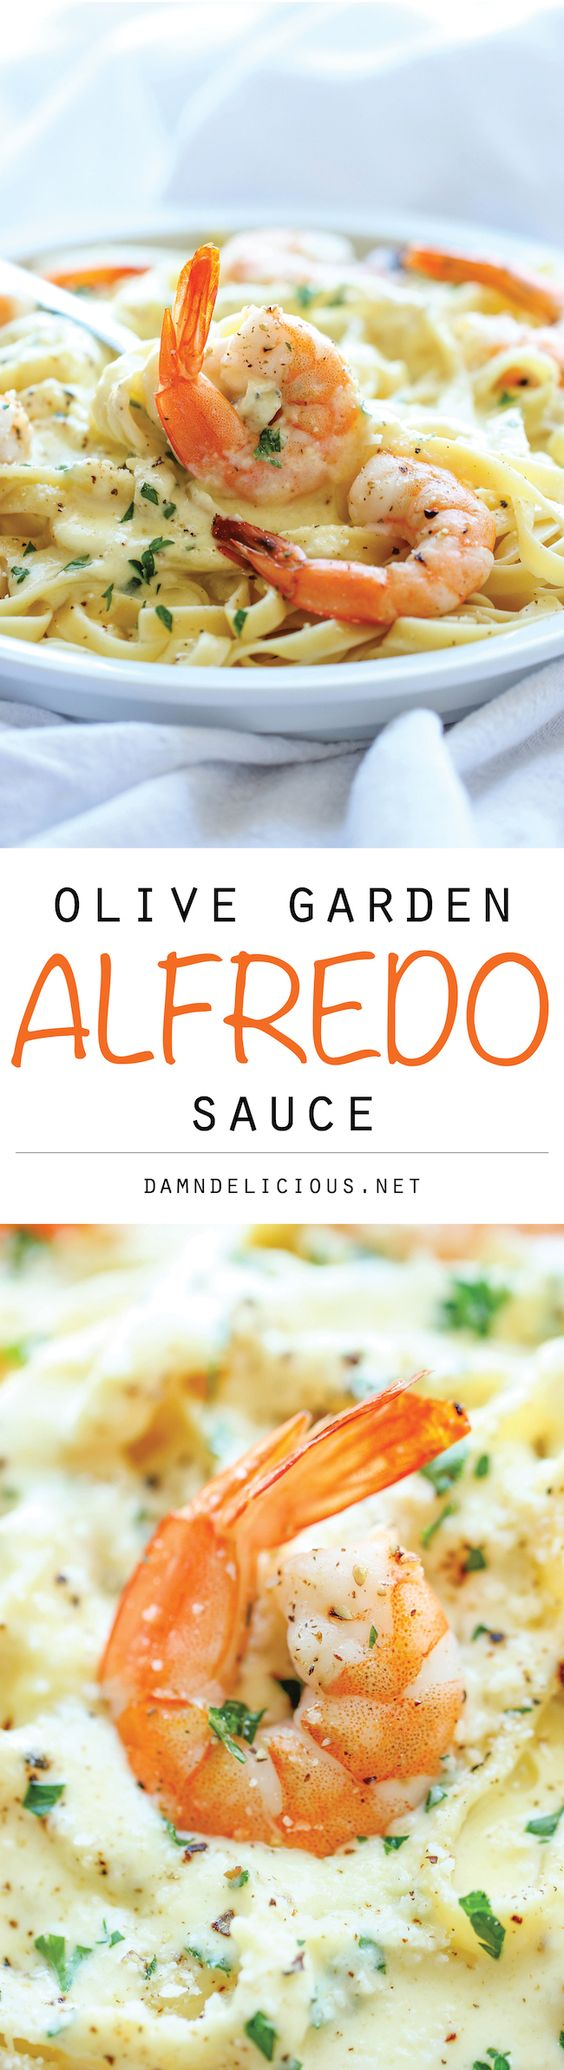 Olive garden alfredo sauce recipe gardens sauces and - Olive garden chicken alfredo sauce recipe ...